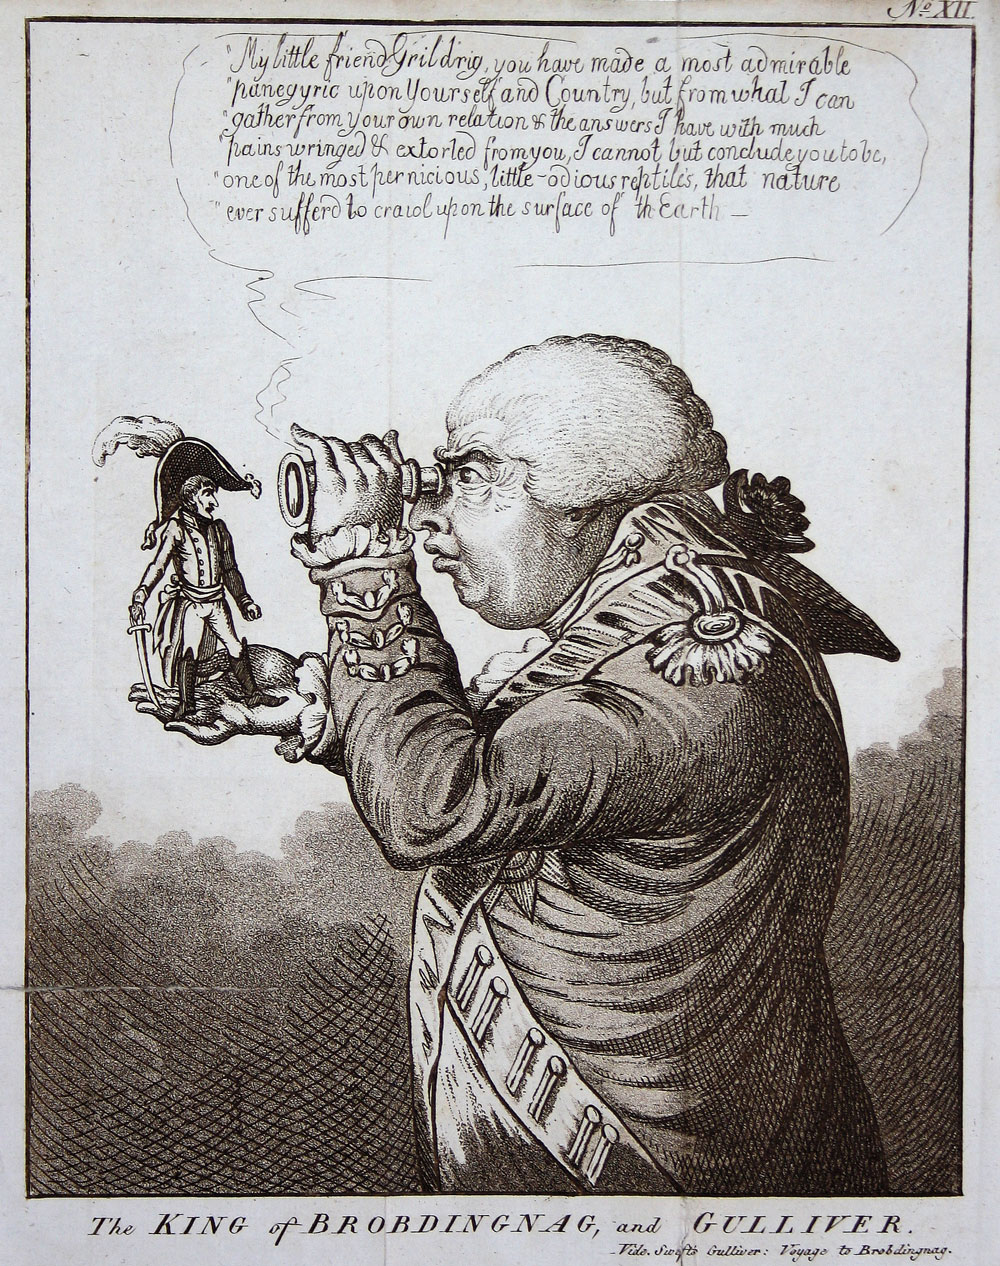 The King of Brobdingnag and Gulliver, by James Gillray 1803